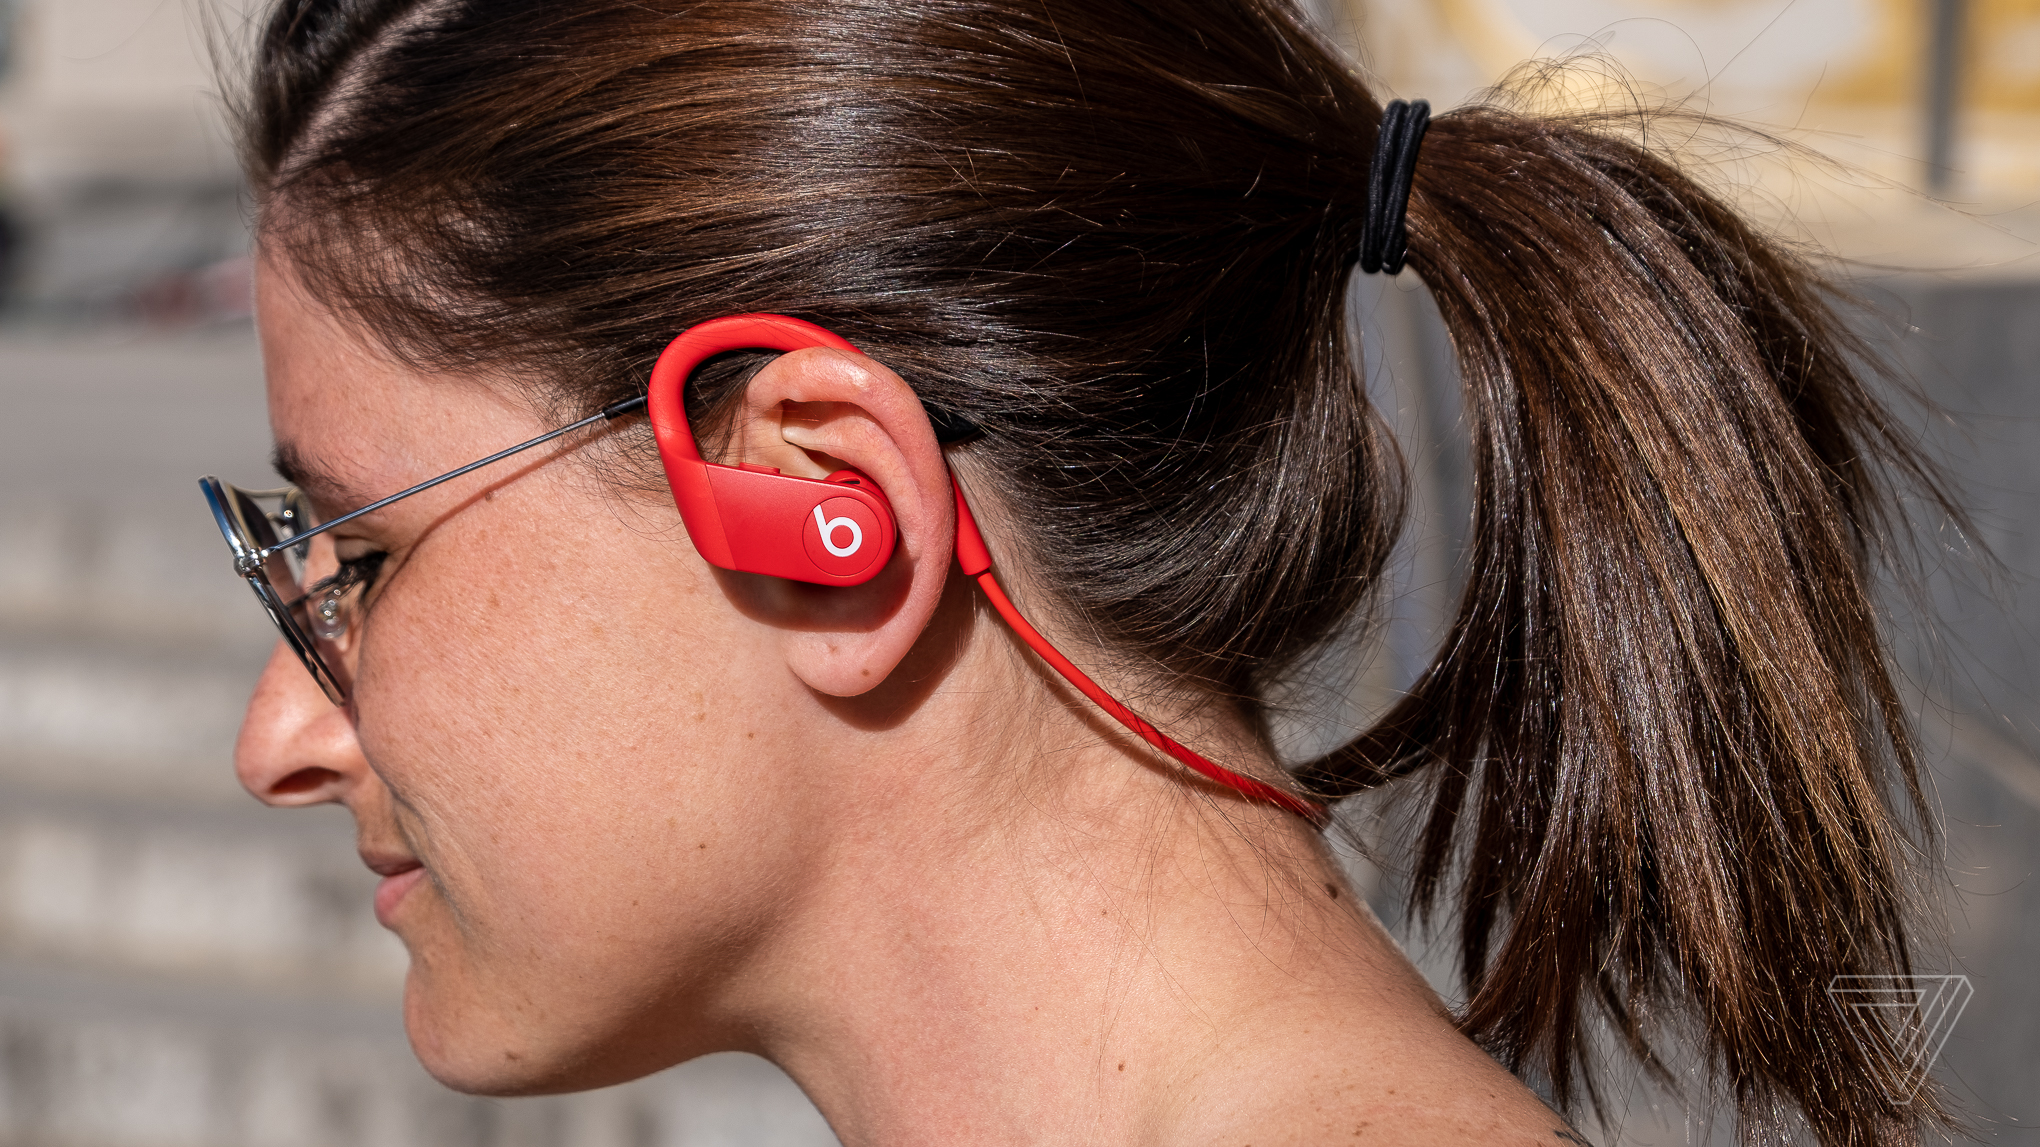 Powerbeats 4 earbuds seen from a side profile view.